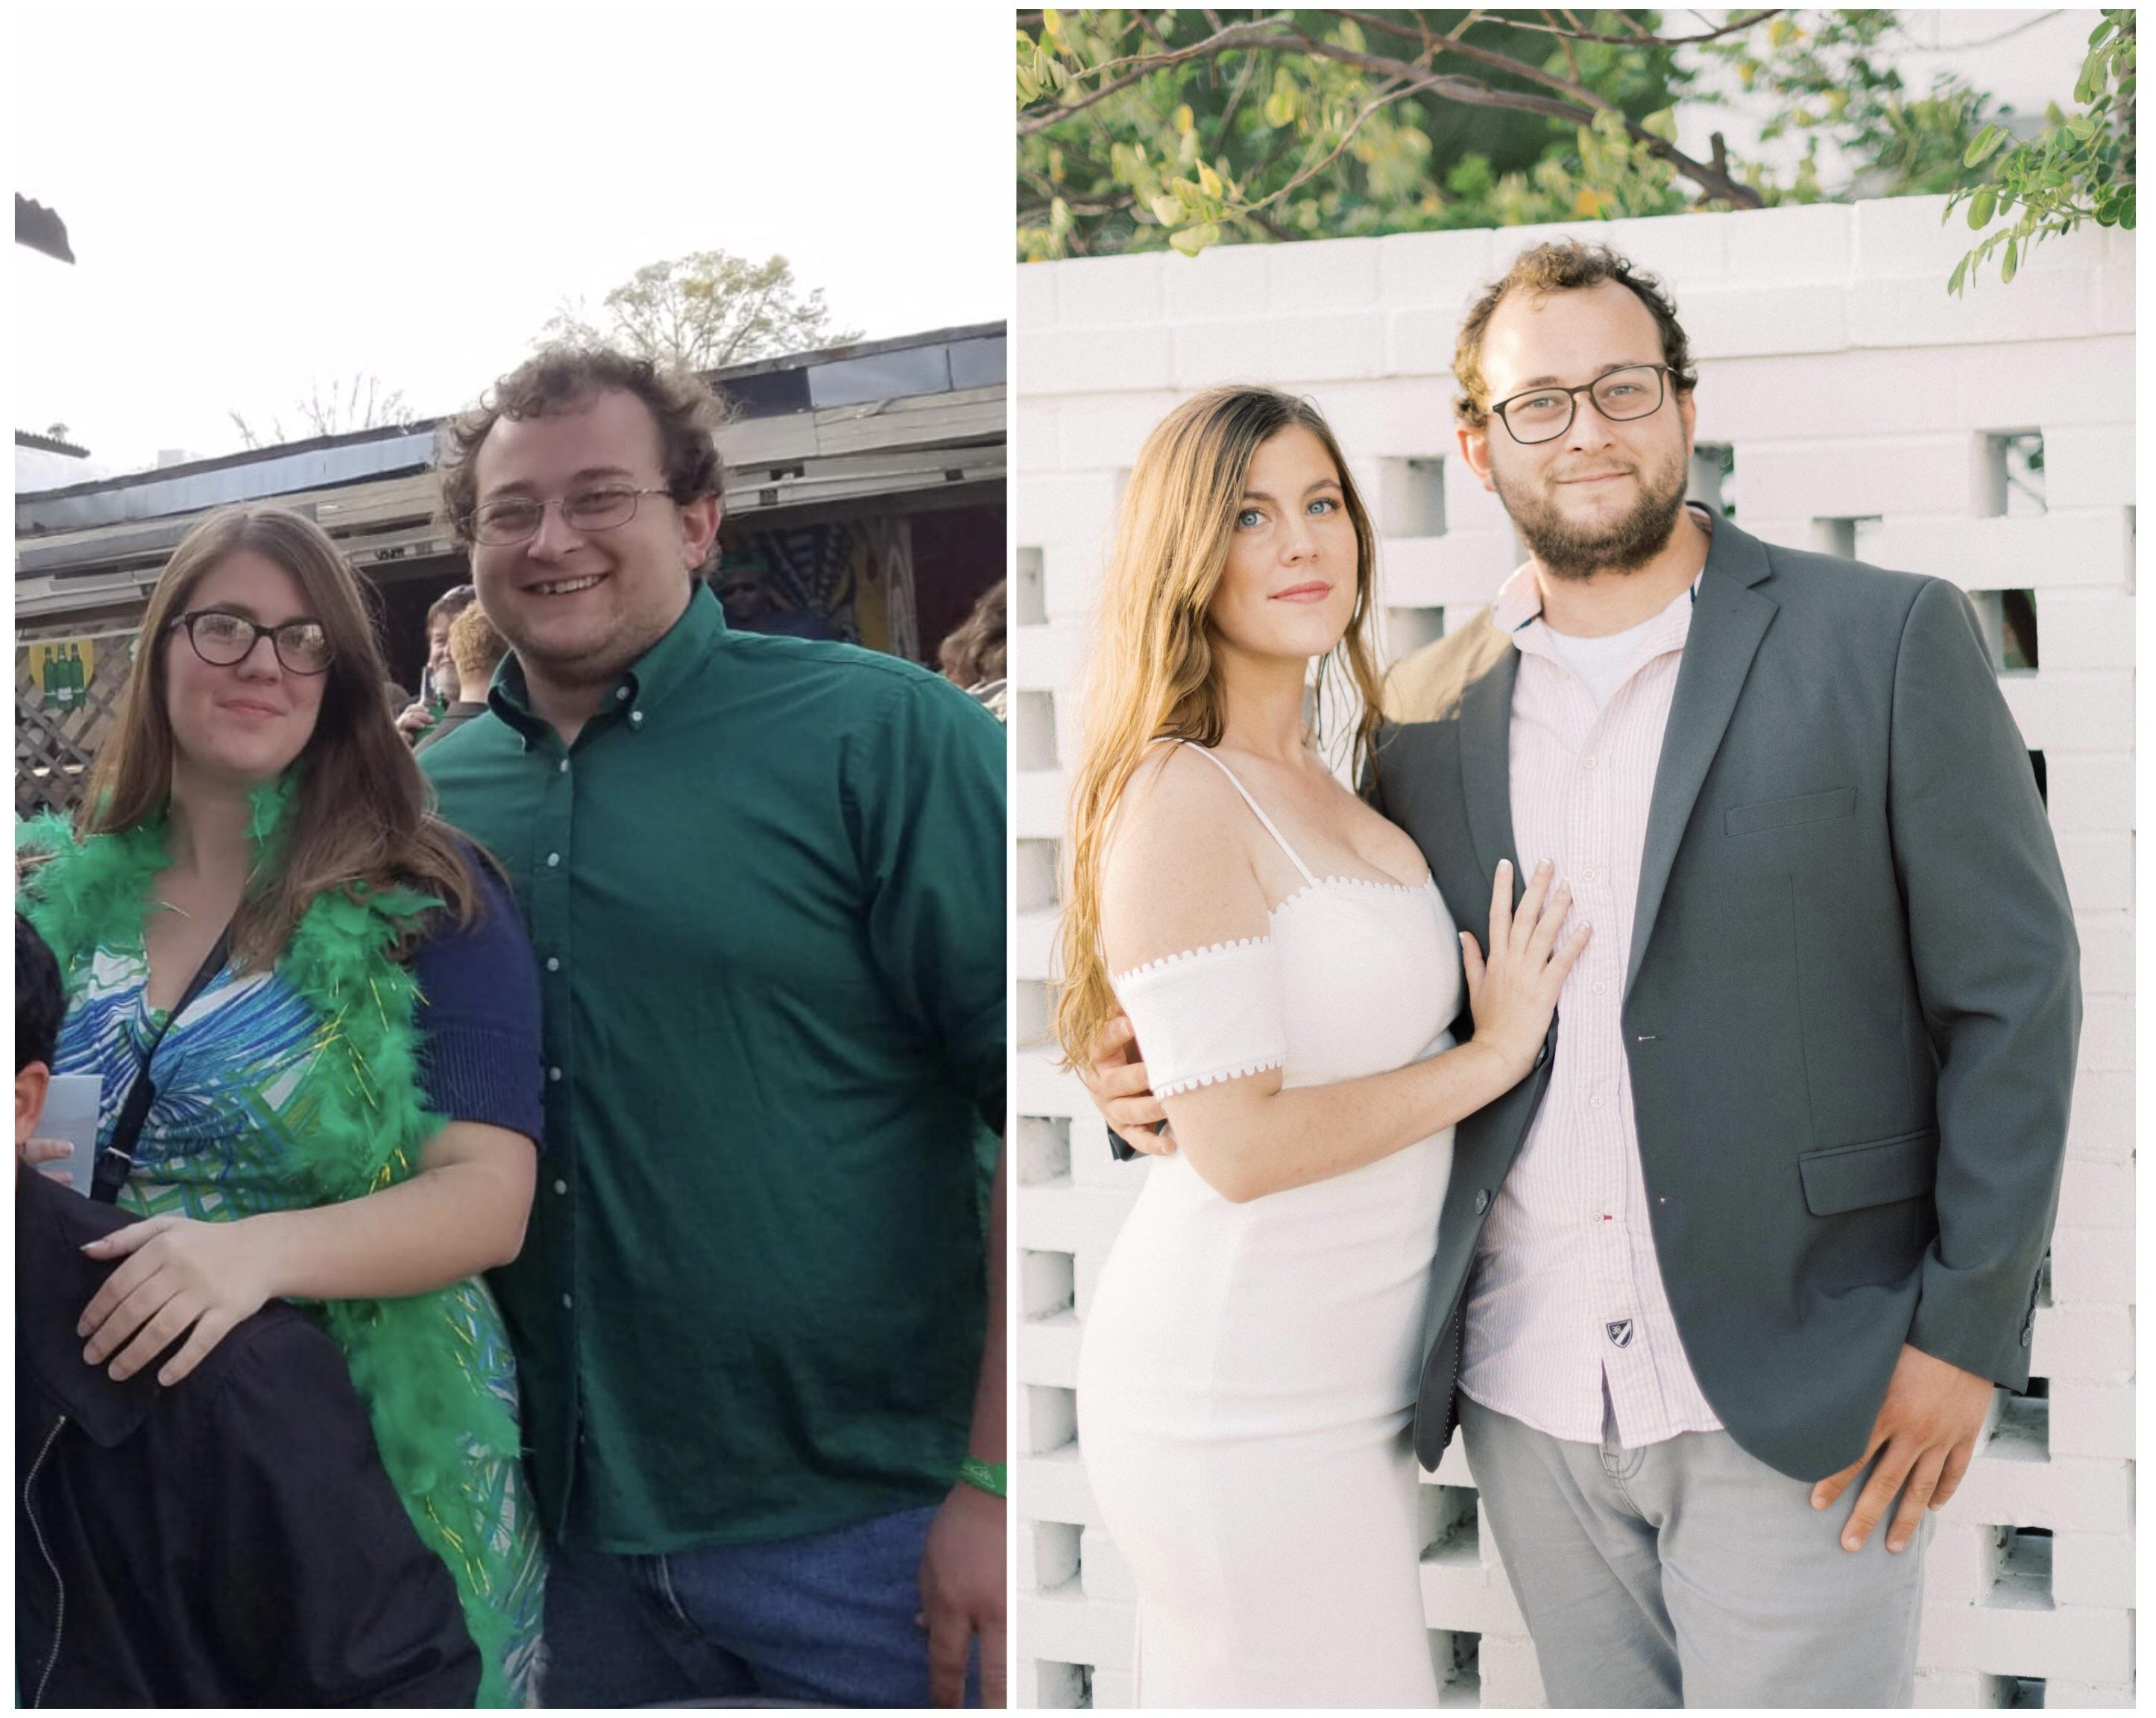 5 foot 7 Female Before and After 73 lbs Weight Loss 203 lbs to 130 lbs